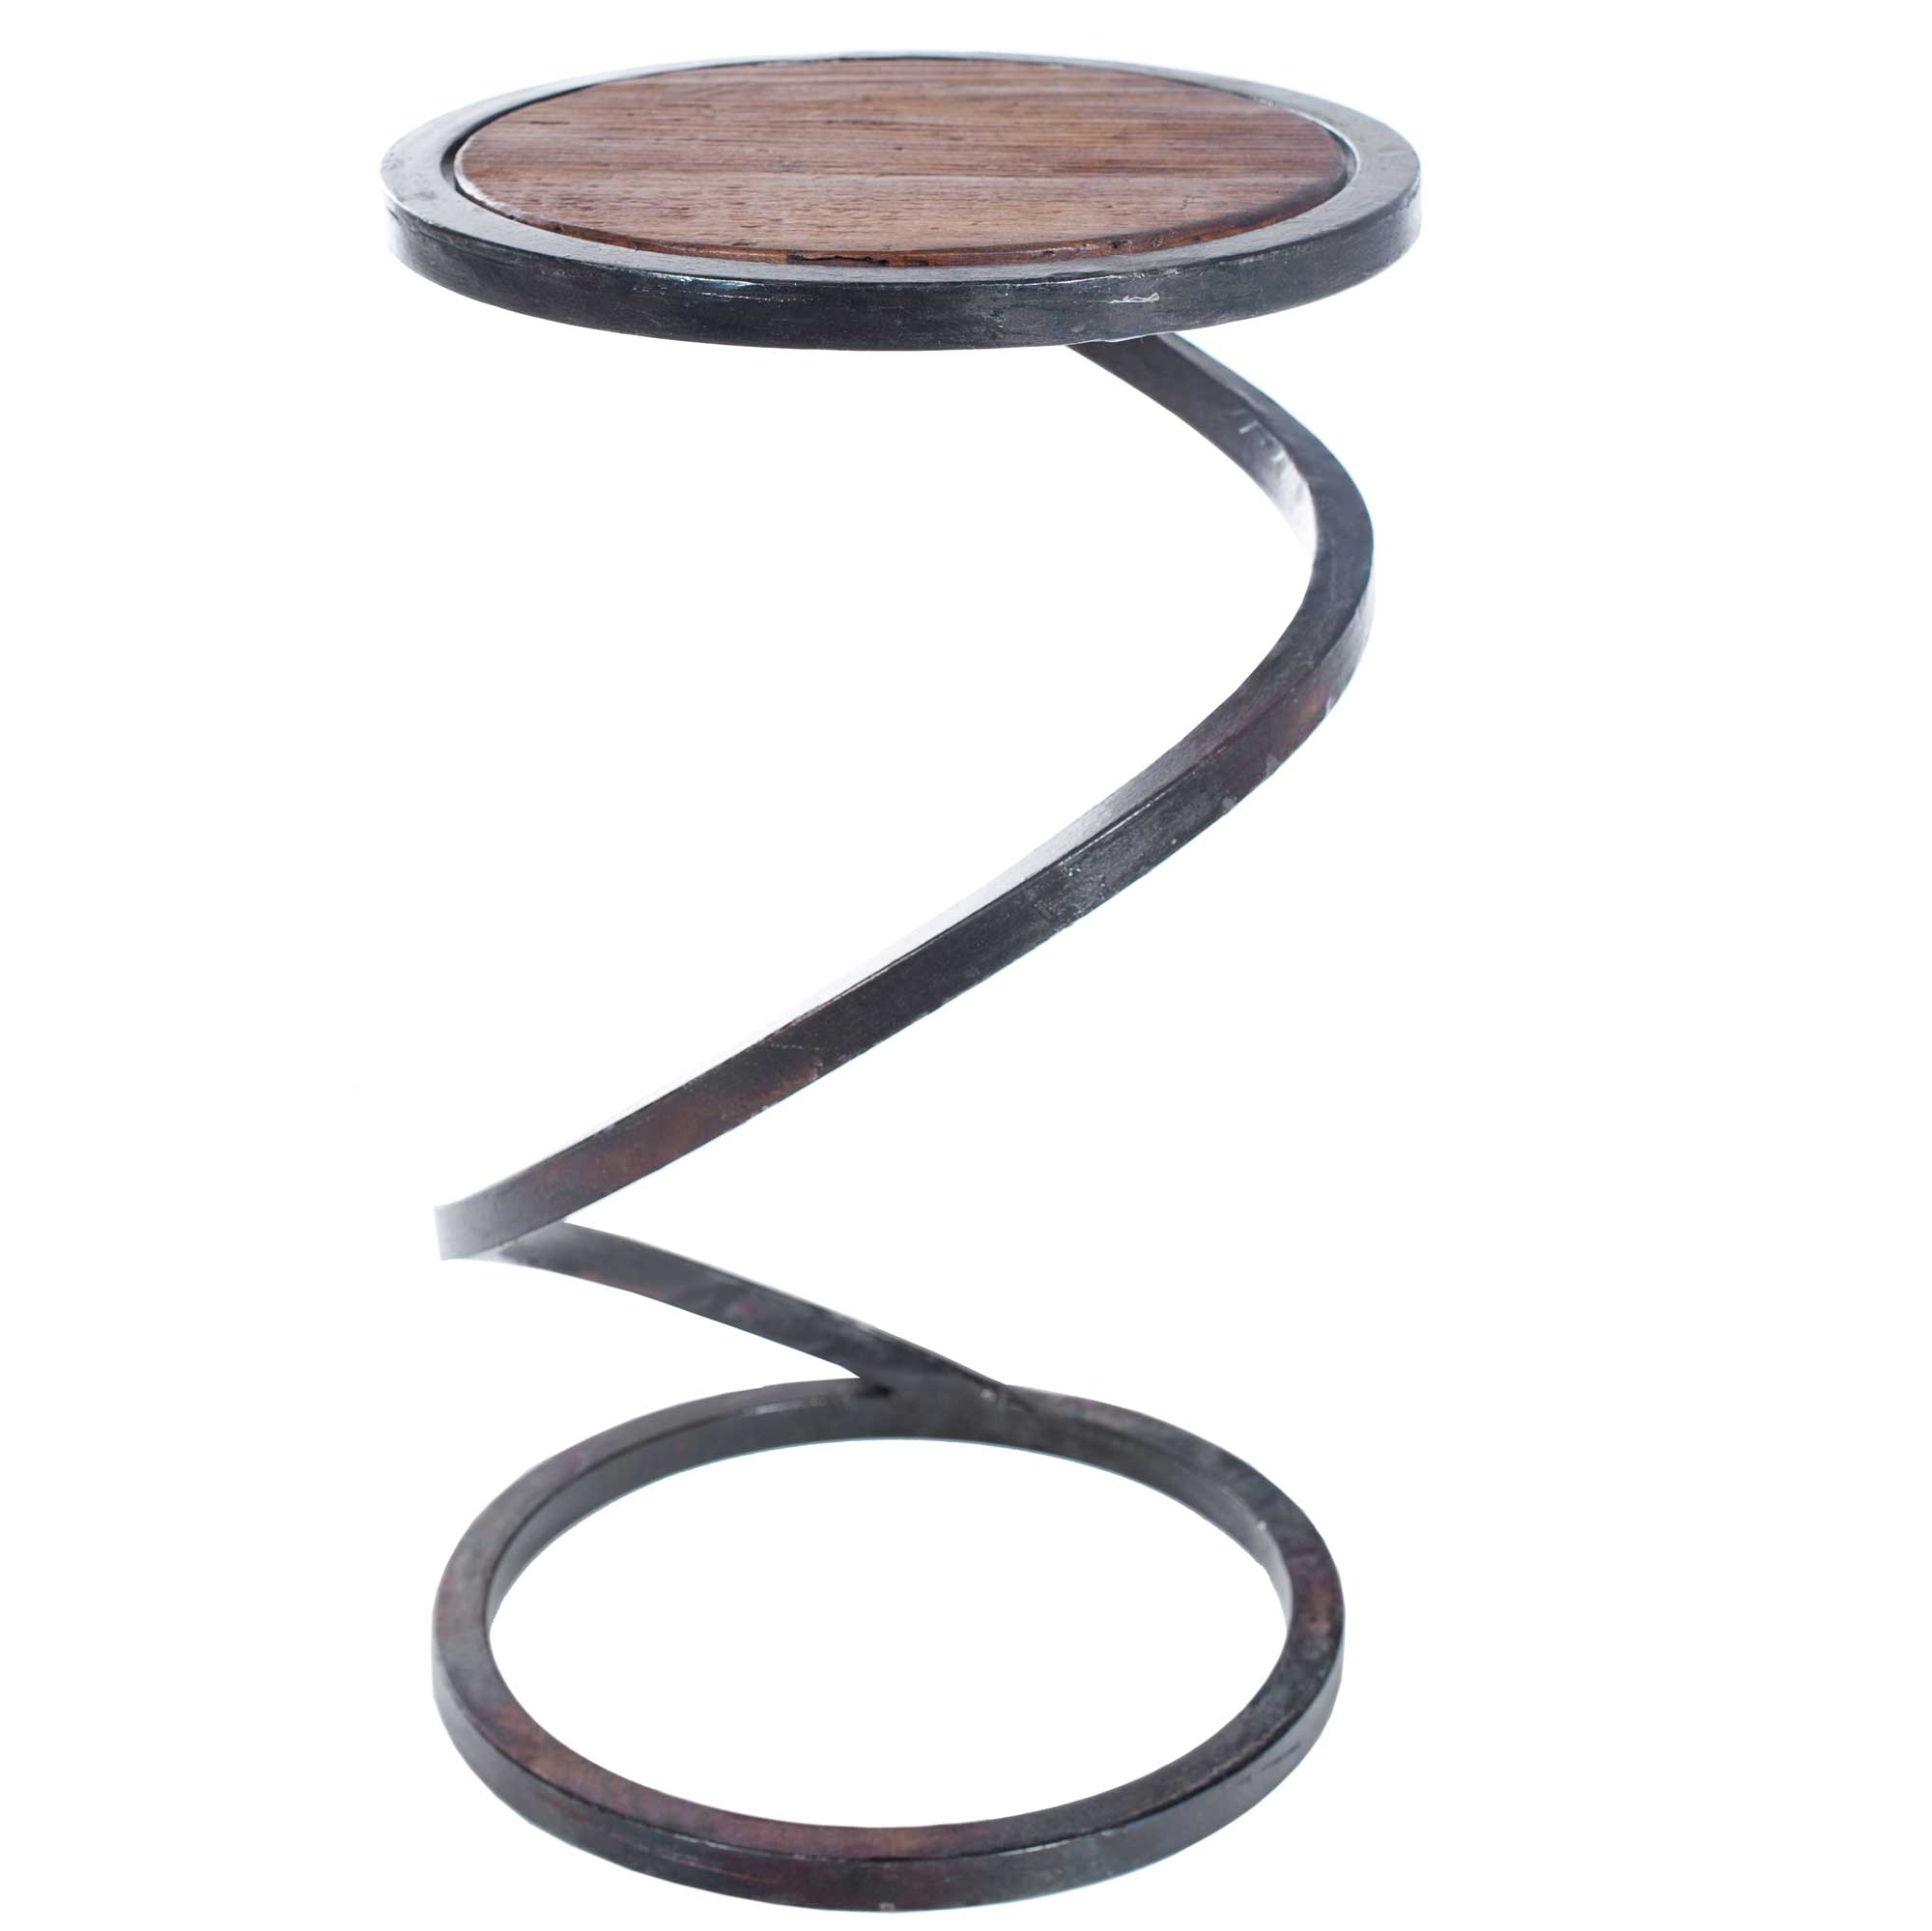 spiral round iron accent table with reclaimed wood top twi metal wrought base and larger coffee tables melbourne navy blue bunnings chairs teal storage cabinet outdoor sofa dining